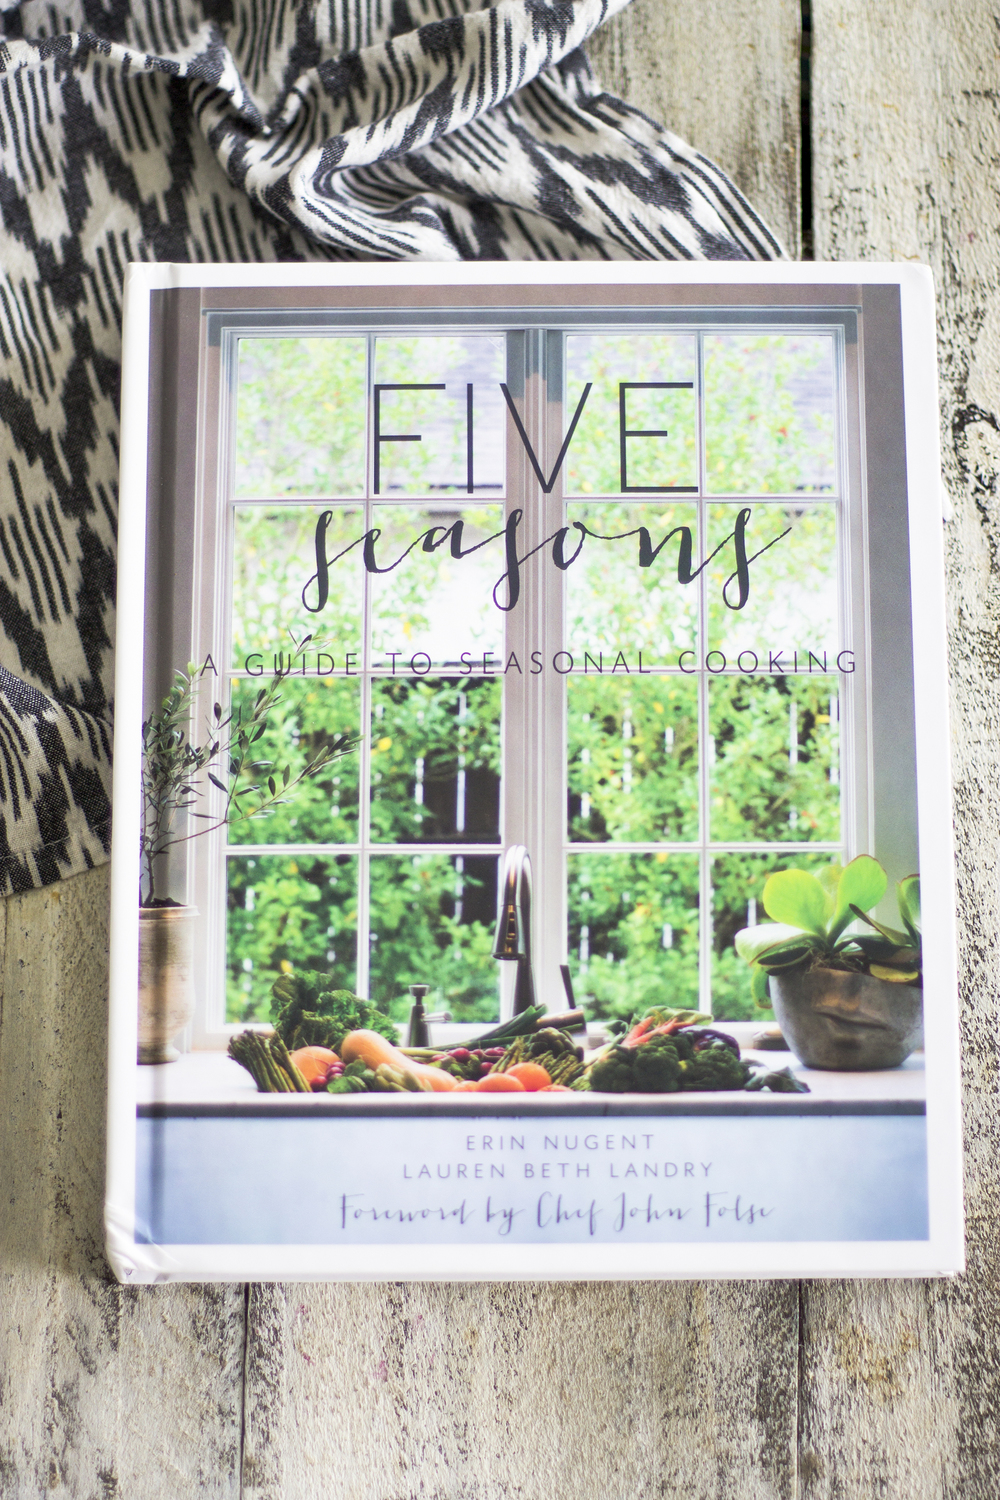 Five Seasons Cookbook: My Diary of Us